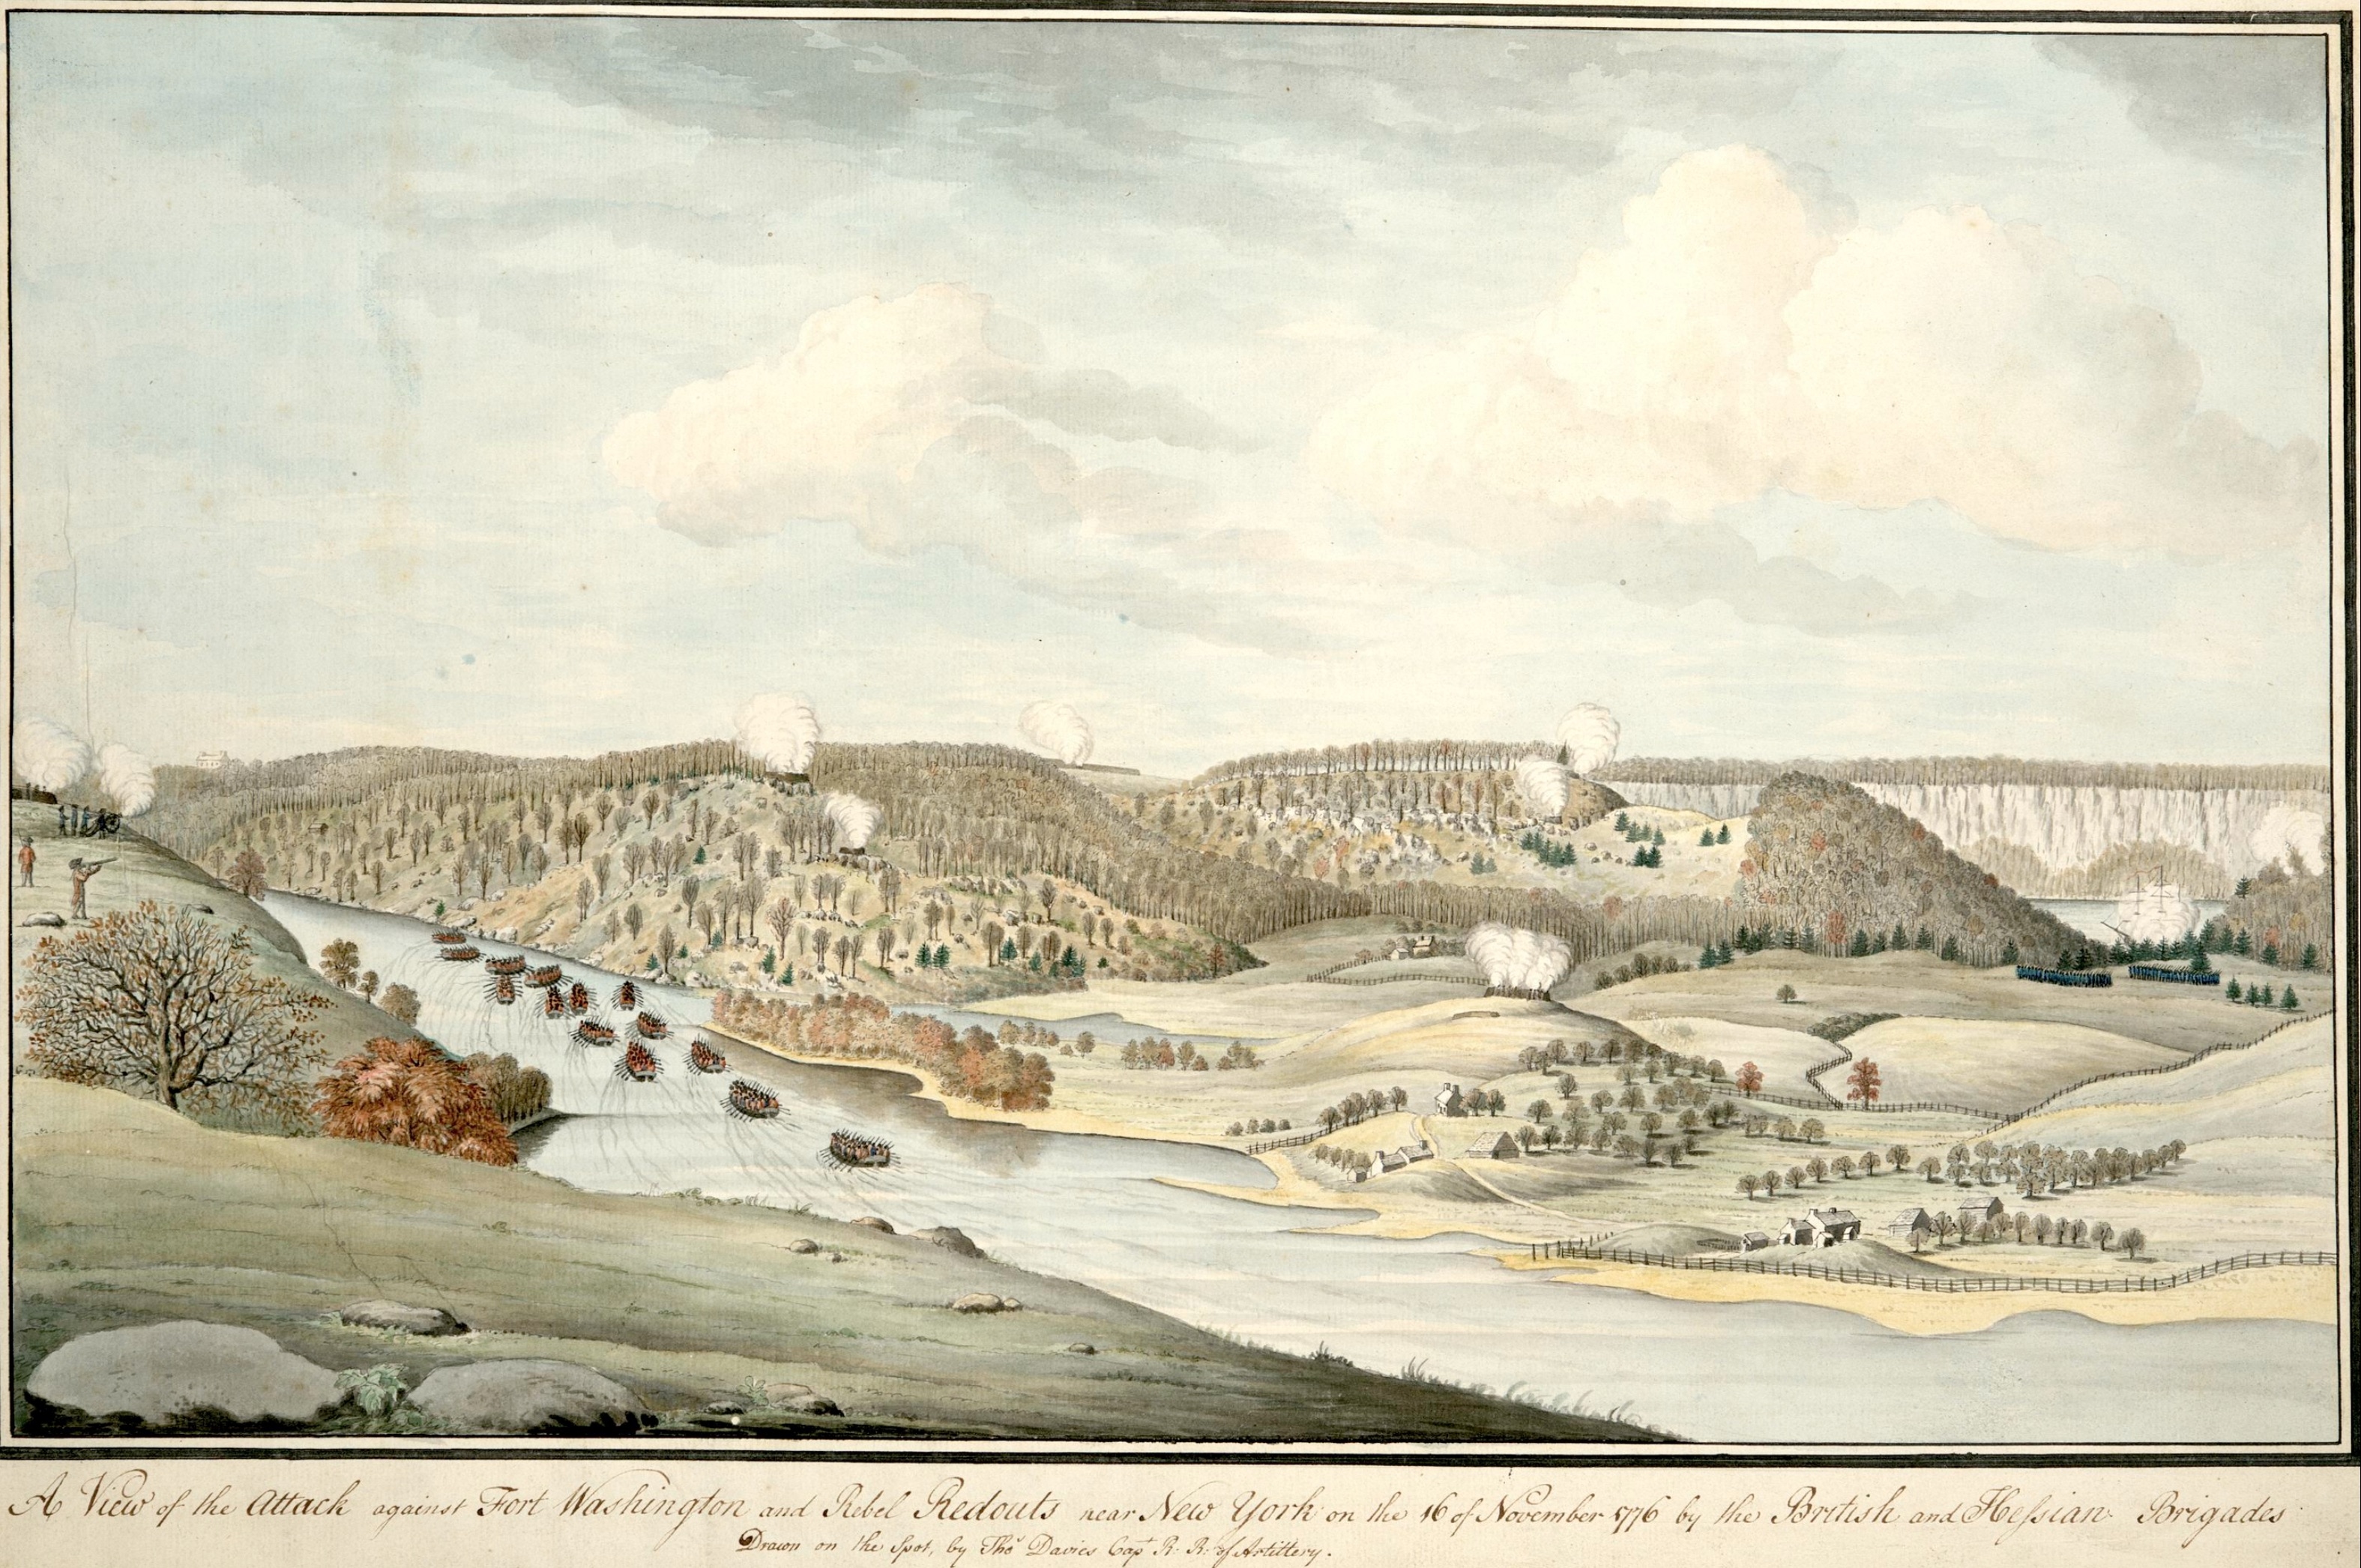 This watercolor of the attack on Fort Washington includes the site where Margaret Corbin was wounded while serving with the American artillery.